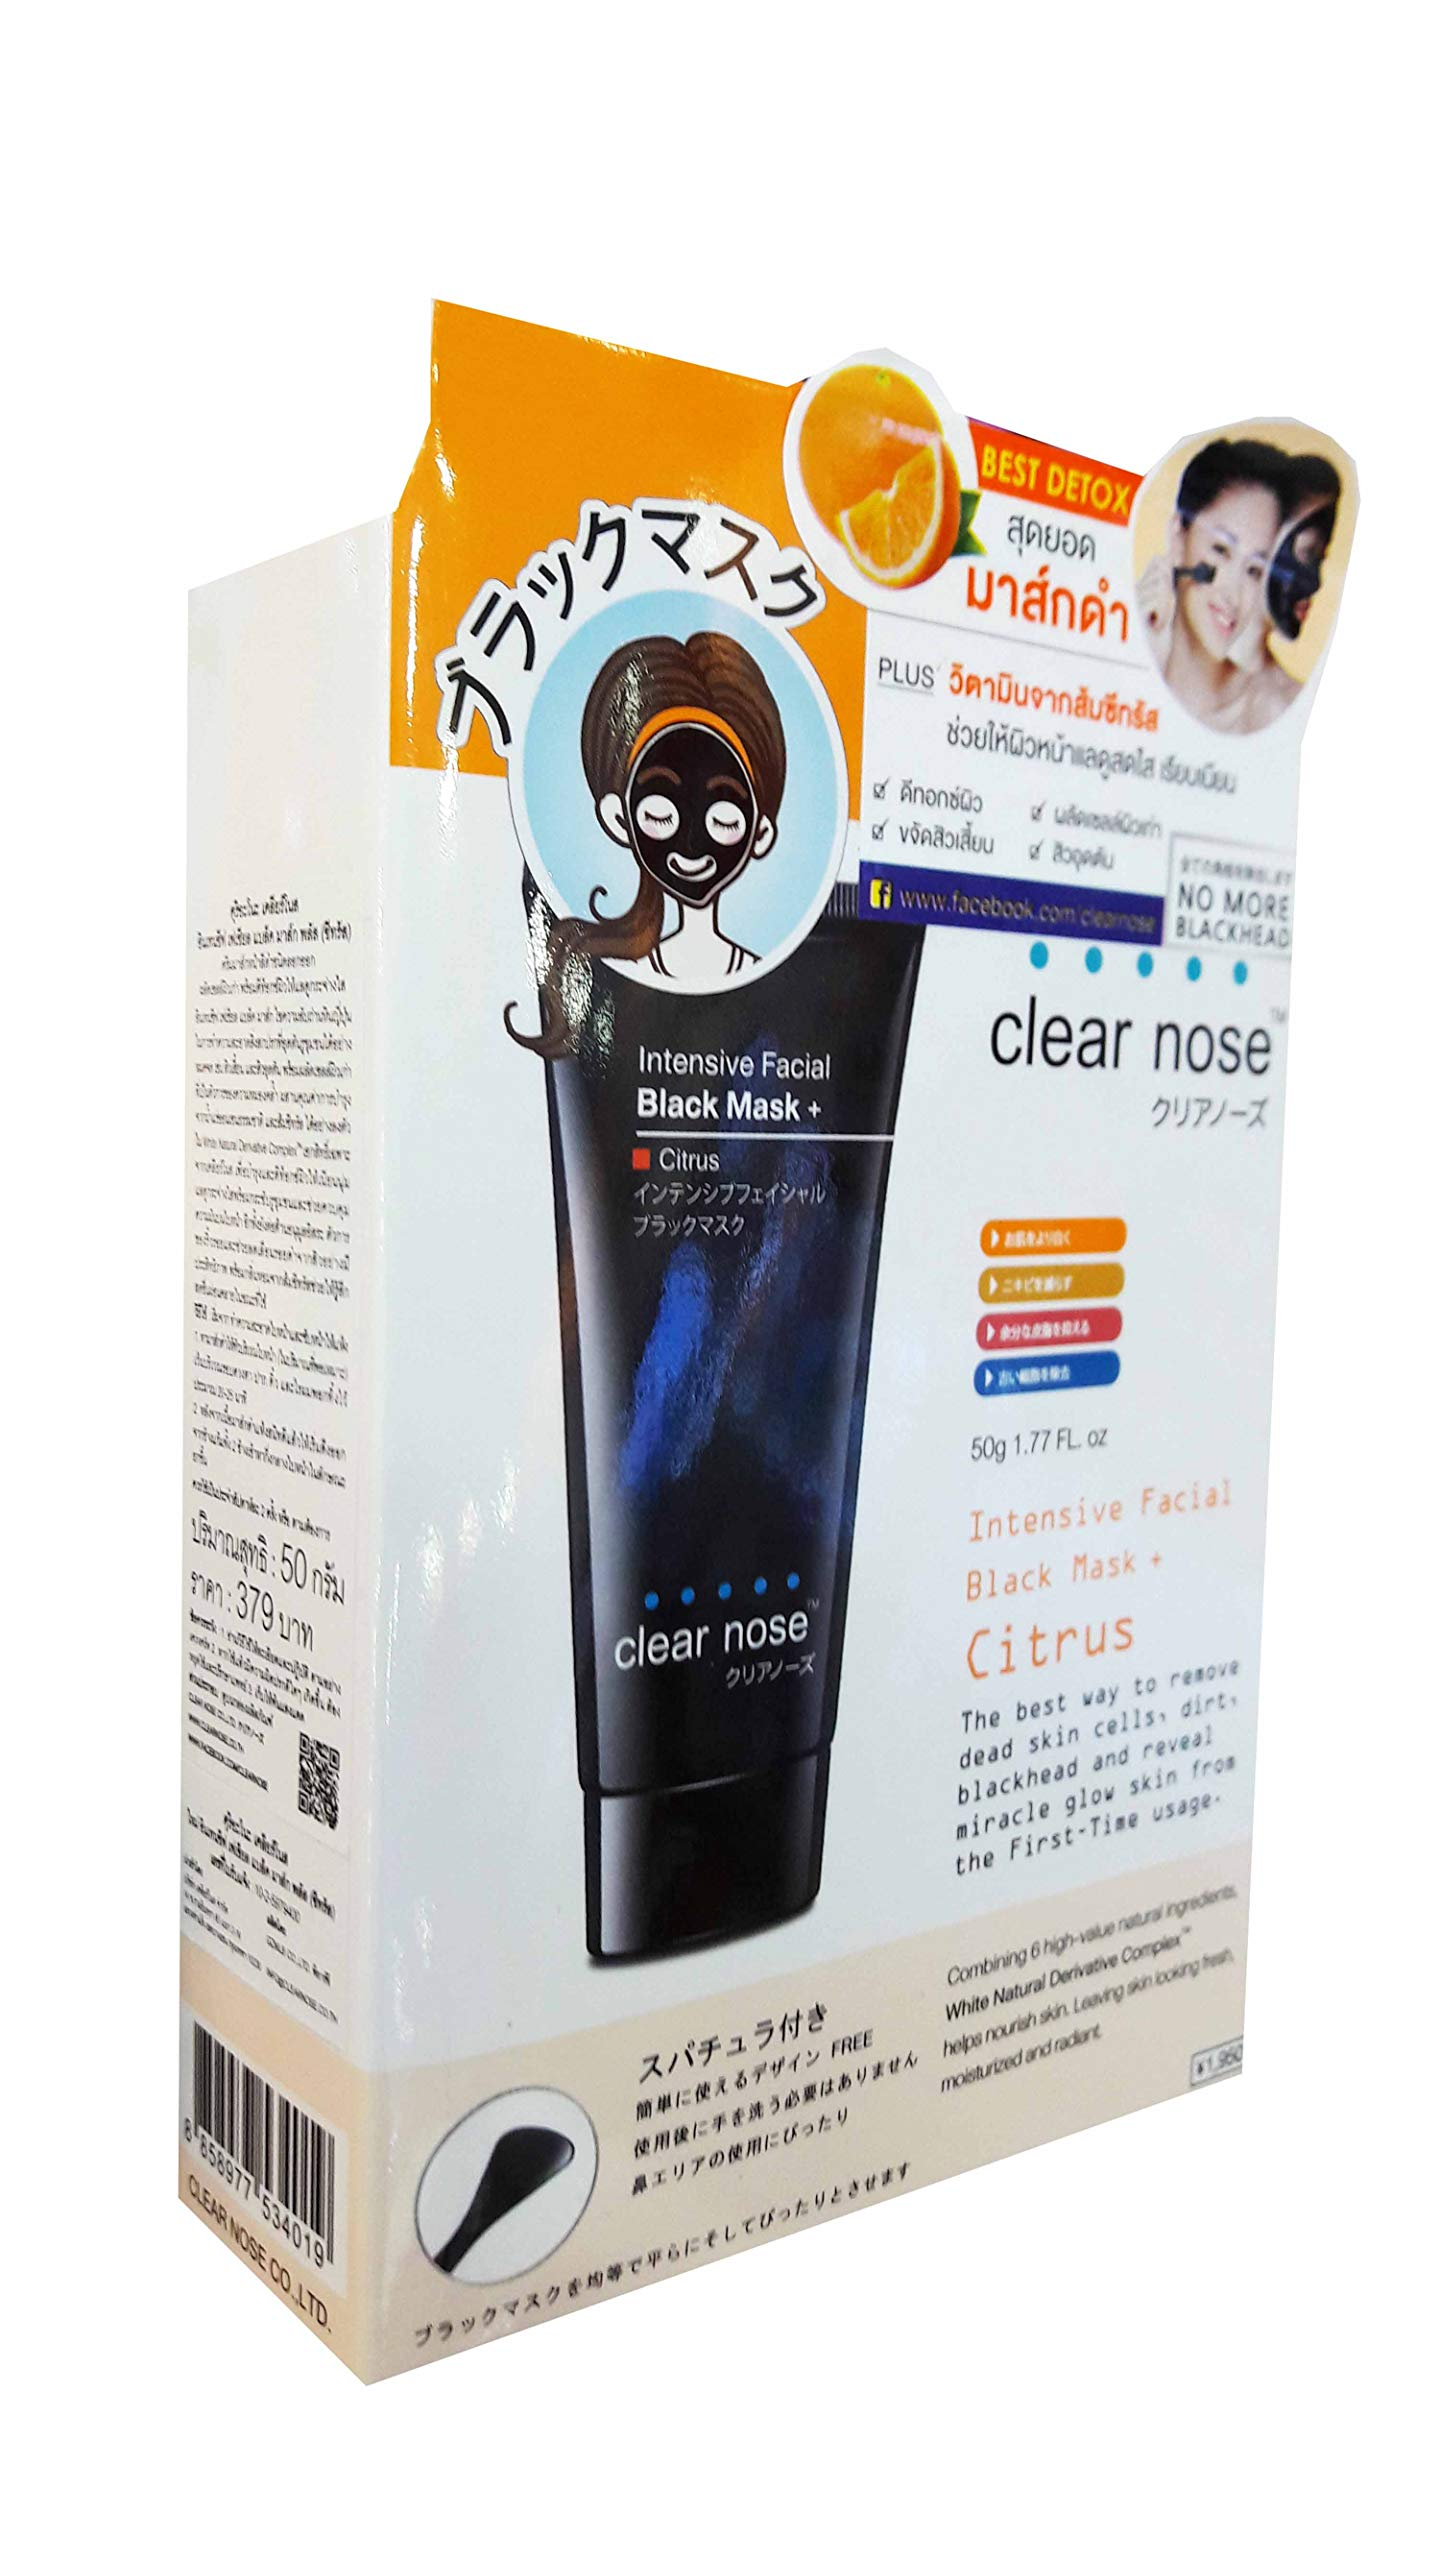 2 Packs of Clear Nose: Intensive Facial Black Mask, the Best Way to Remove Dead Skin Cells, Dirt, Blackhead and Reveal Miracle Glow Skin From First-time Usage. (50g, 1.77 Fl.oz/ Pack)